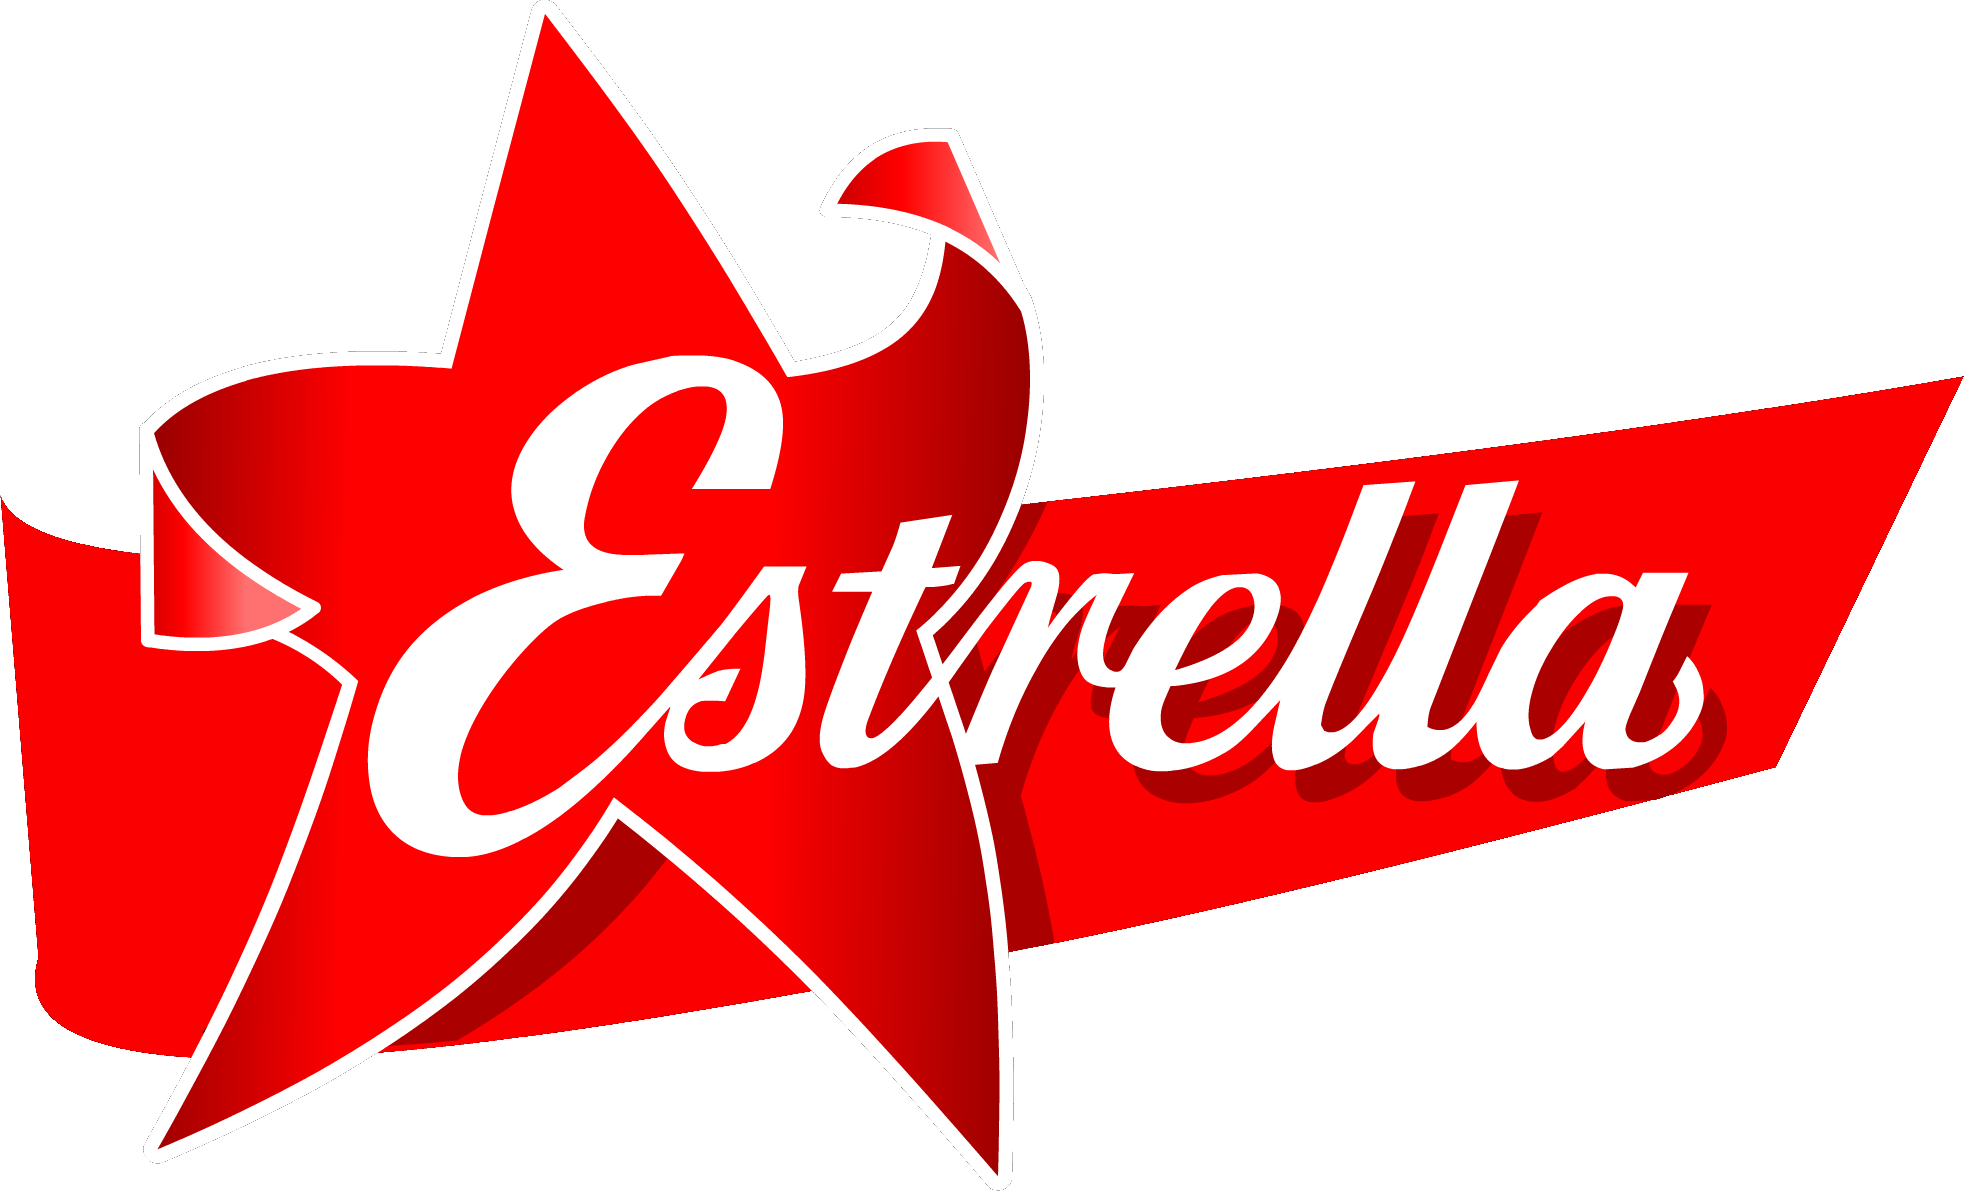 Estrella in addition New 20 In Printable Kraft Coupons At Target moreover Los Grandes Charros Mexicanos together with 16 X Knappe Bekende Nederlandse Mannen in addition 87417 Brand Launches Four New Pepperoni And Salami Varieties In Sandwich Ready Slices. on oscar meyar